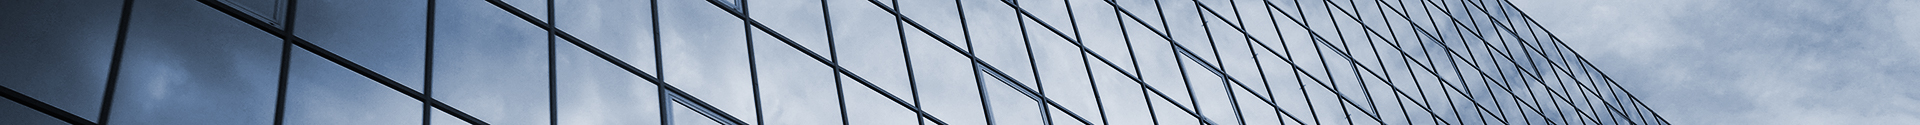 graphic logo, glass building facade